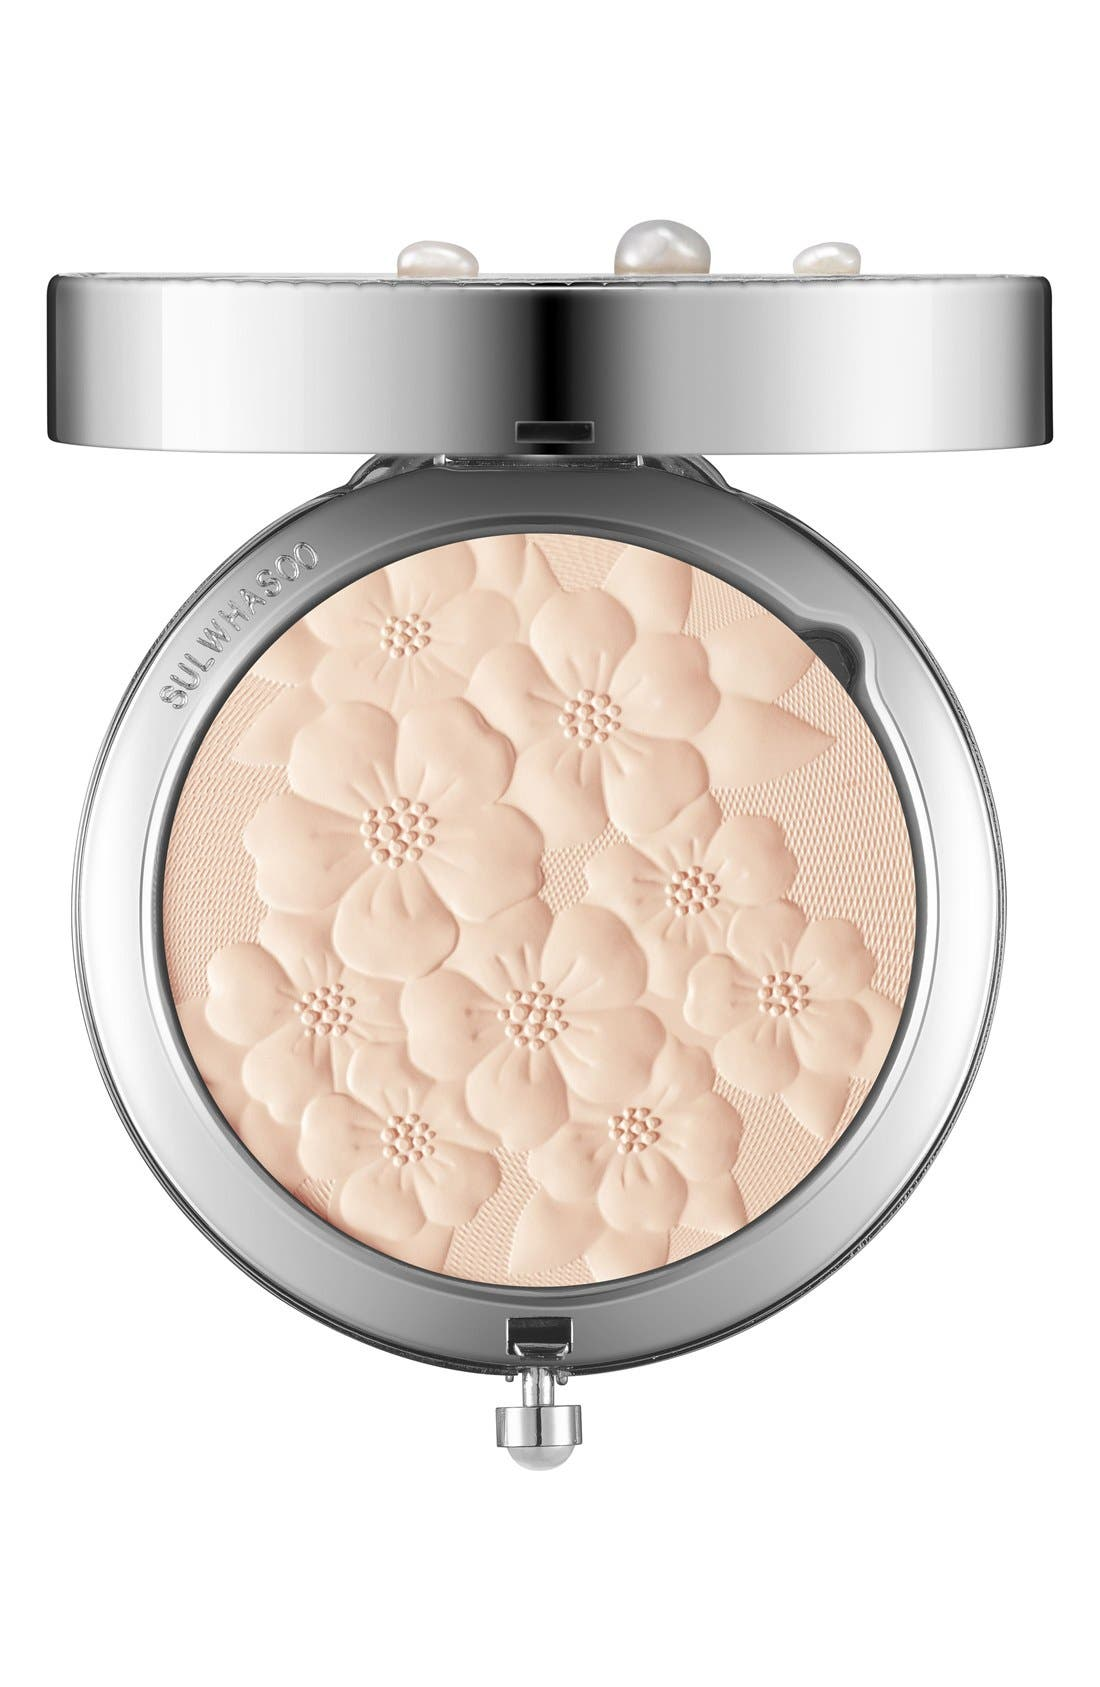 Sulwhasoo Shineclassic Powder Compact (Limited Edition) (Nordstrom Exclusive)